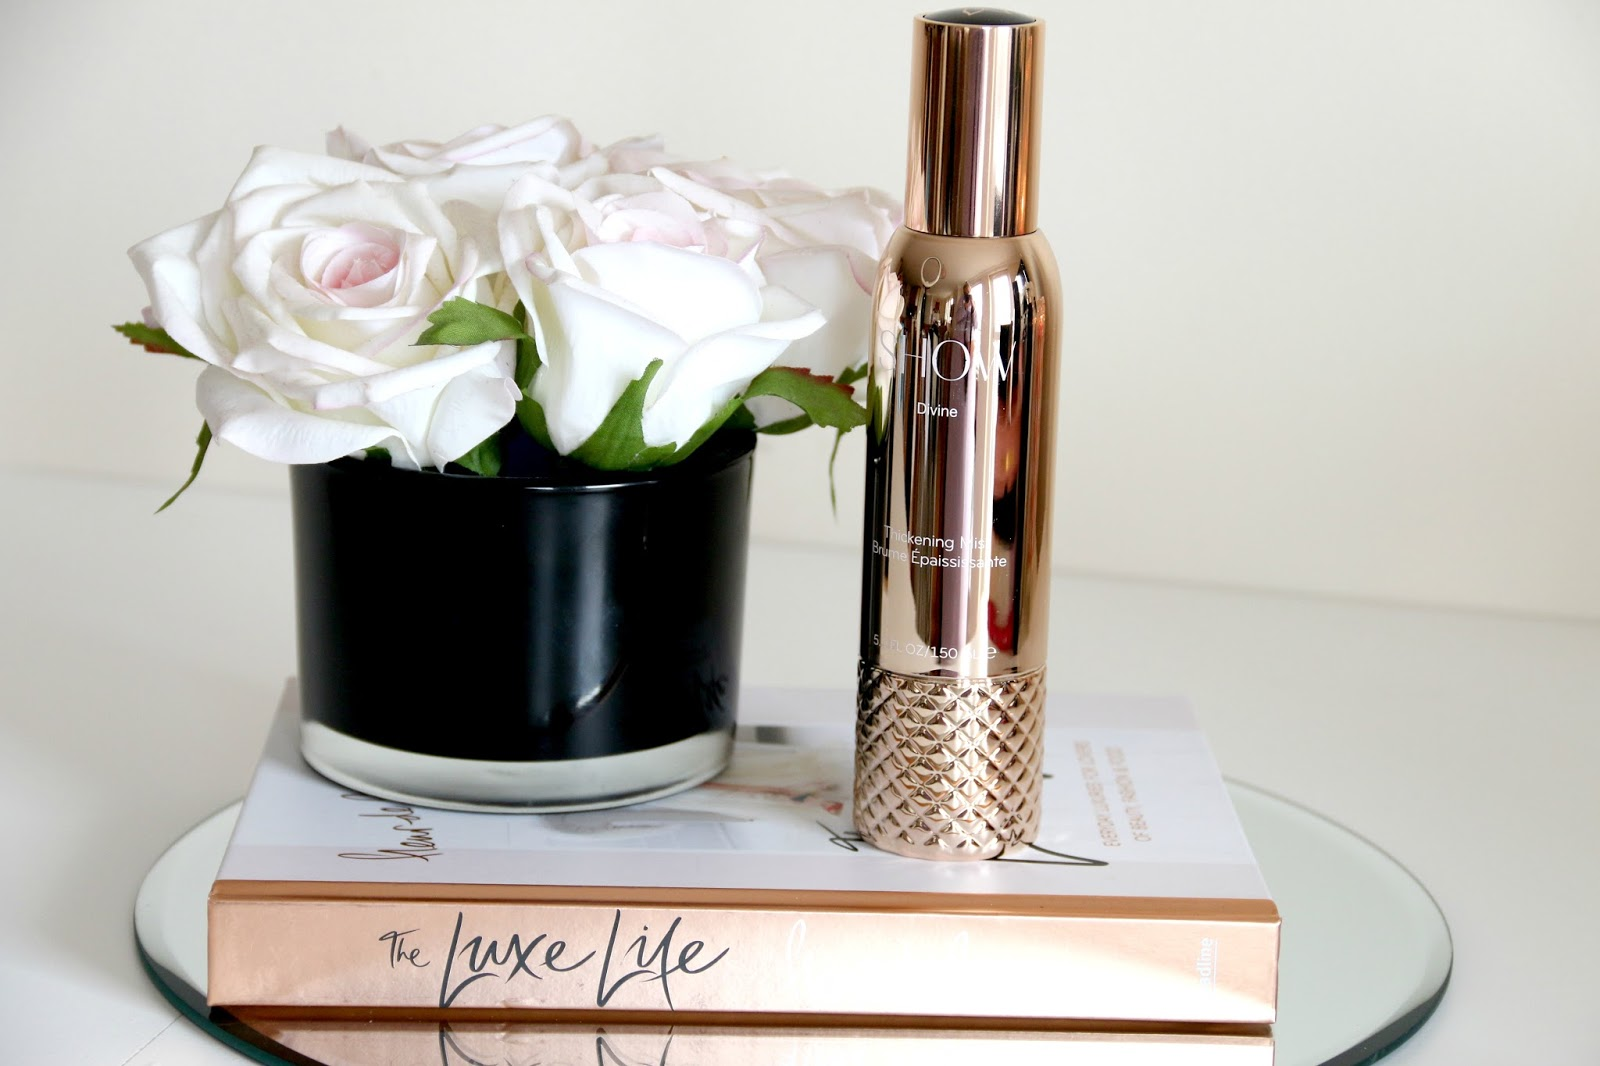 SHOW Beauty Product Review by UK Beauty Blogger WhatLauraLoves